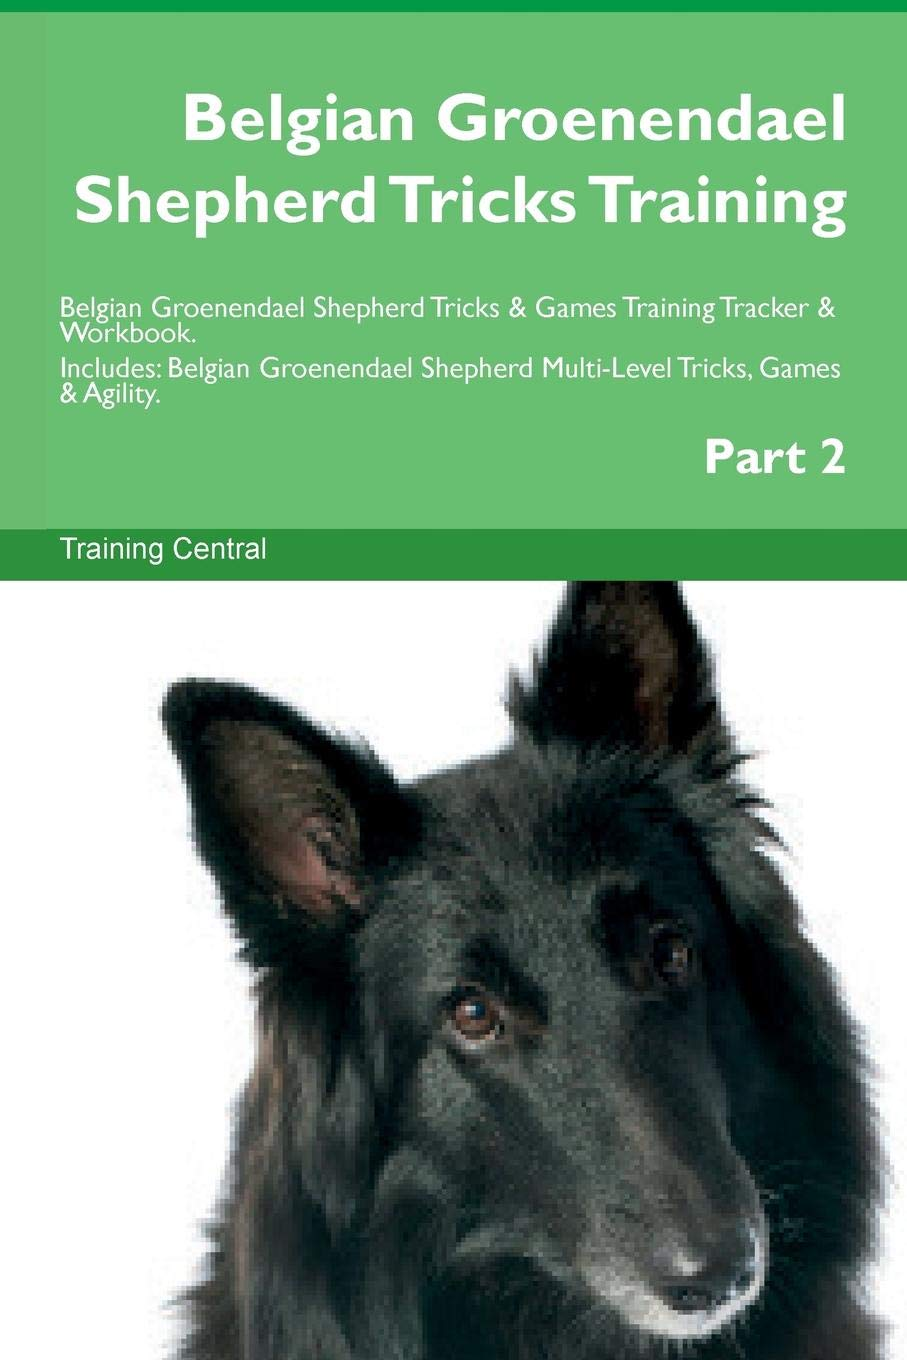 Belgian Groenendael Shepherd Tricks Training Belgian Groenendael Shepherd Tricks & Games Training Tracker & Workbook.  Includes: Belgian Groenendael … Multi-Level Tricks, Games & Agility. Part 2